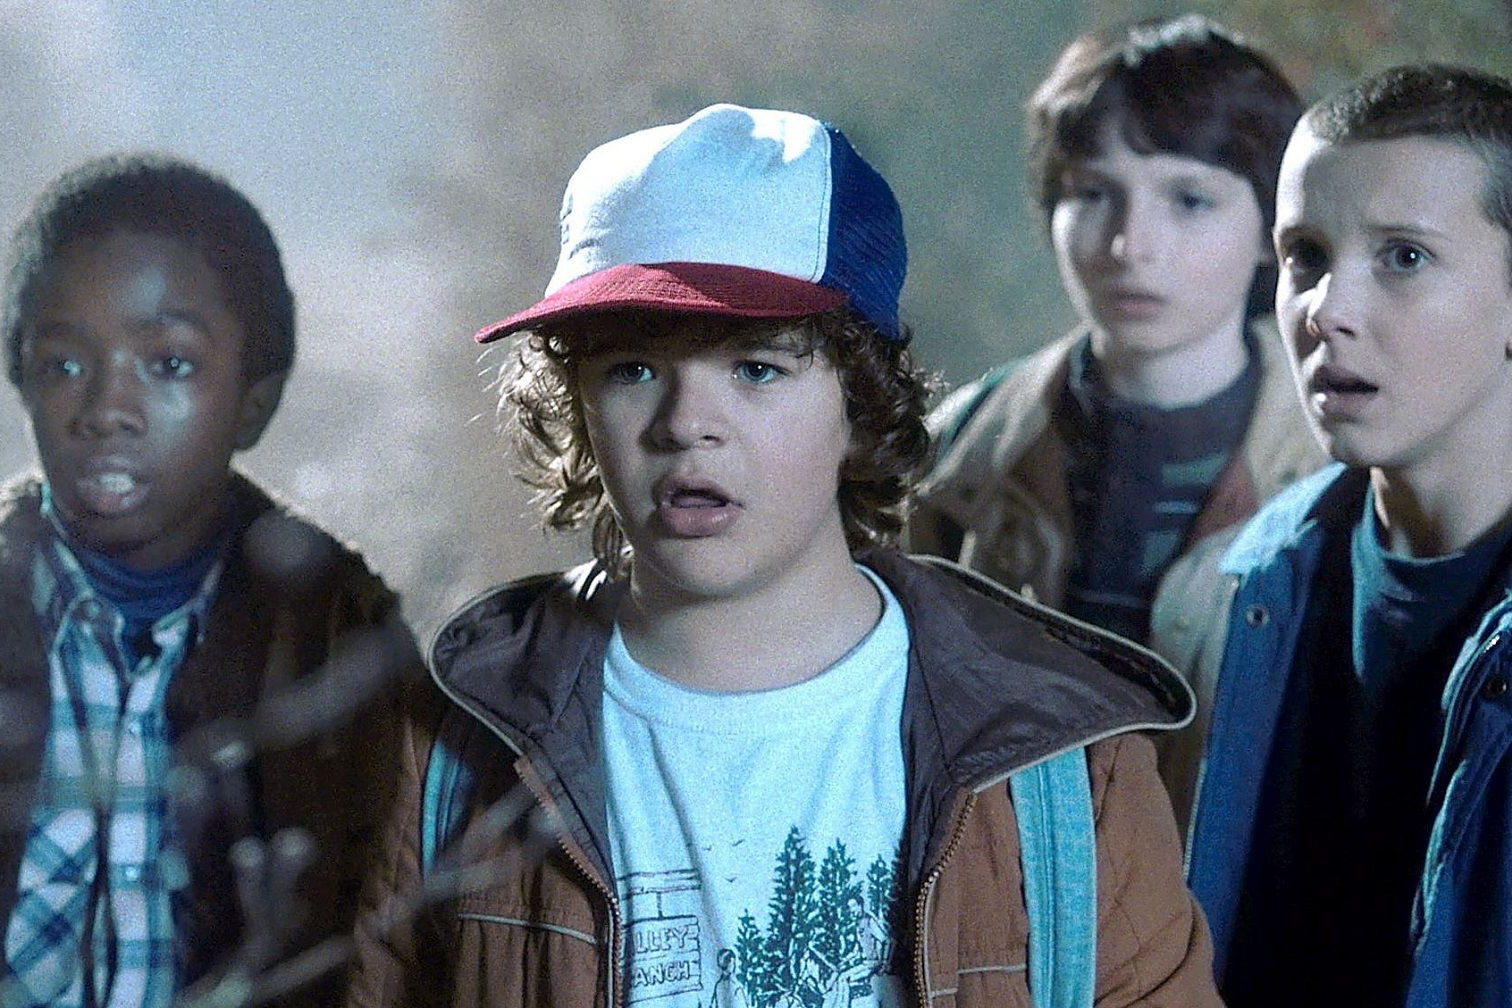 Stranger Things: 10 eerie synth gems to hear if you loved the show's OST